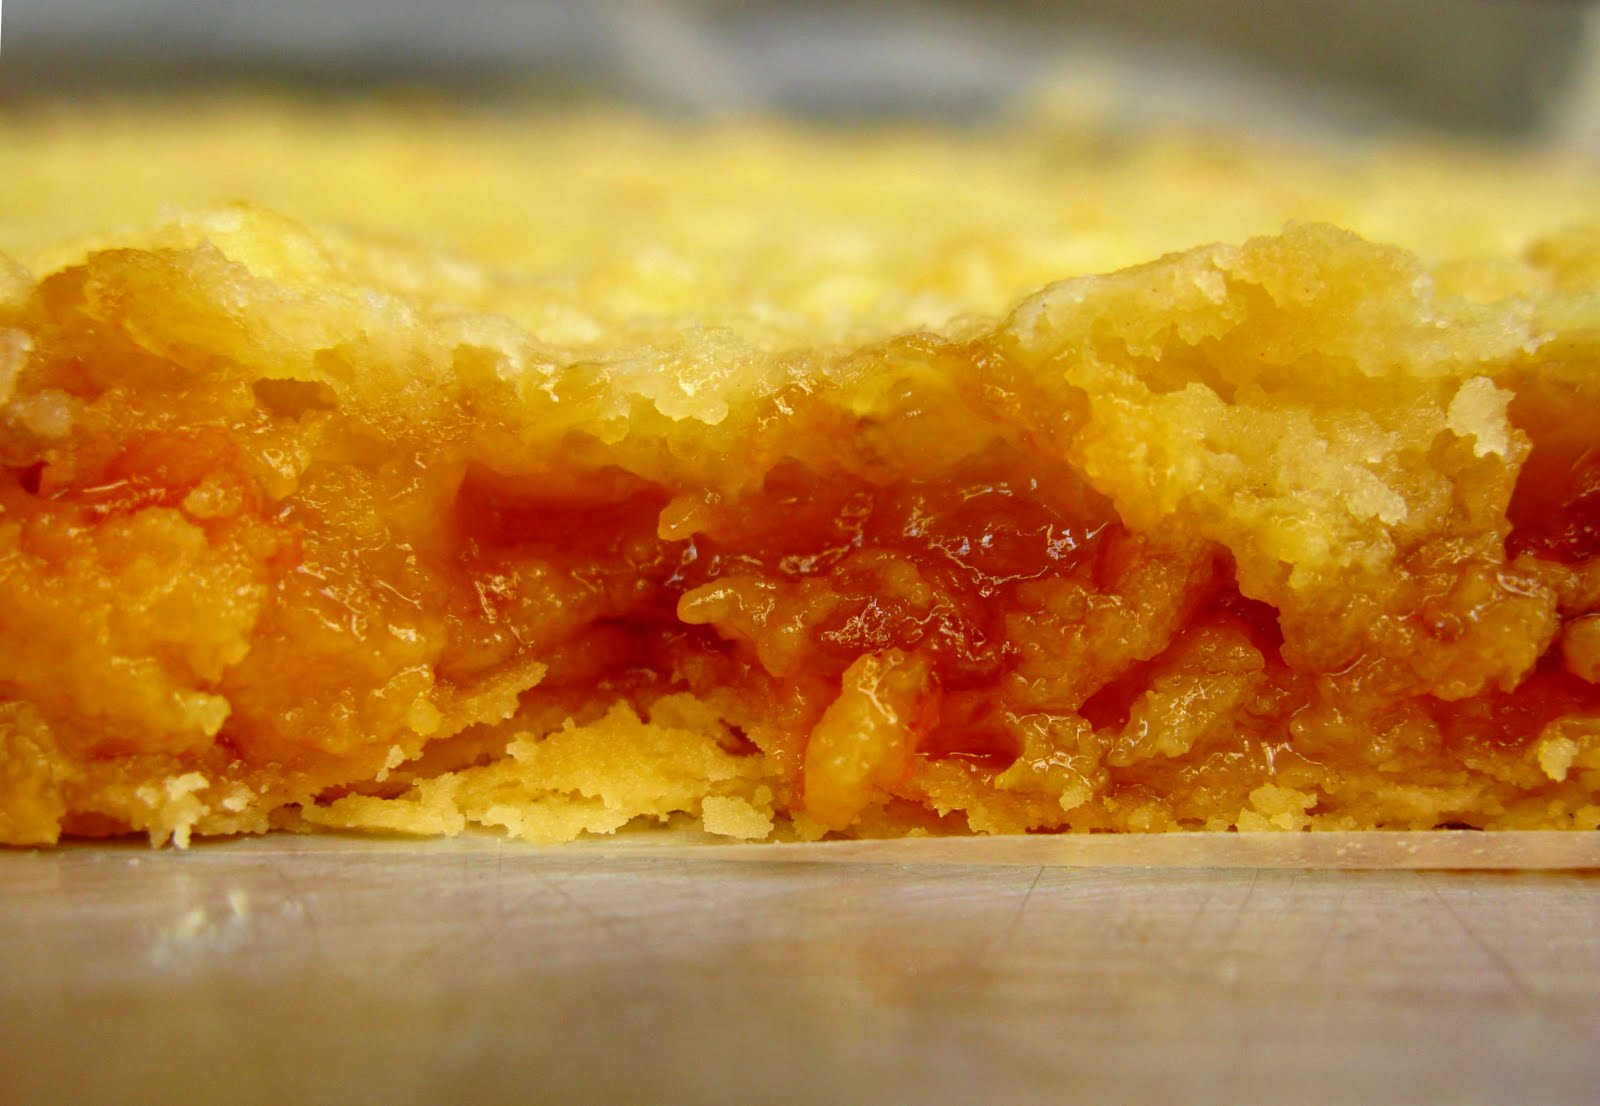 Sink your teeth… Into some Apricot Cream Cheese Streusel Bars!